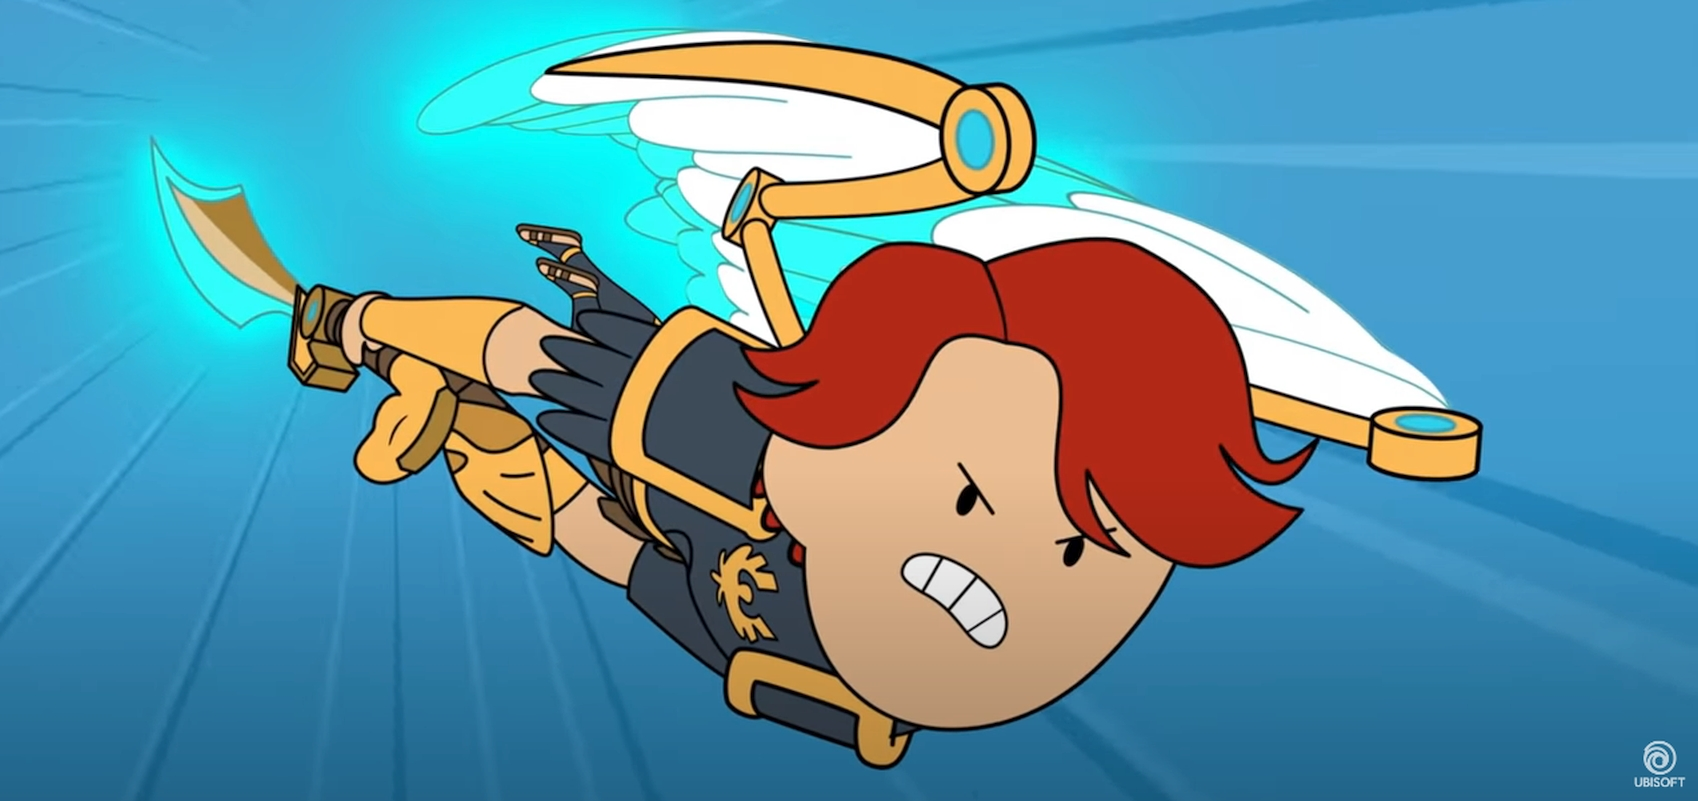 Adventure Time's Finn And Jake Join Immortals Fenyx Rising In New Crossover Video